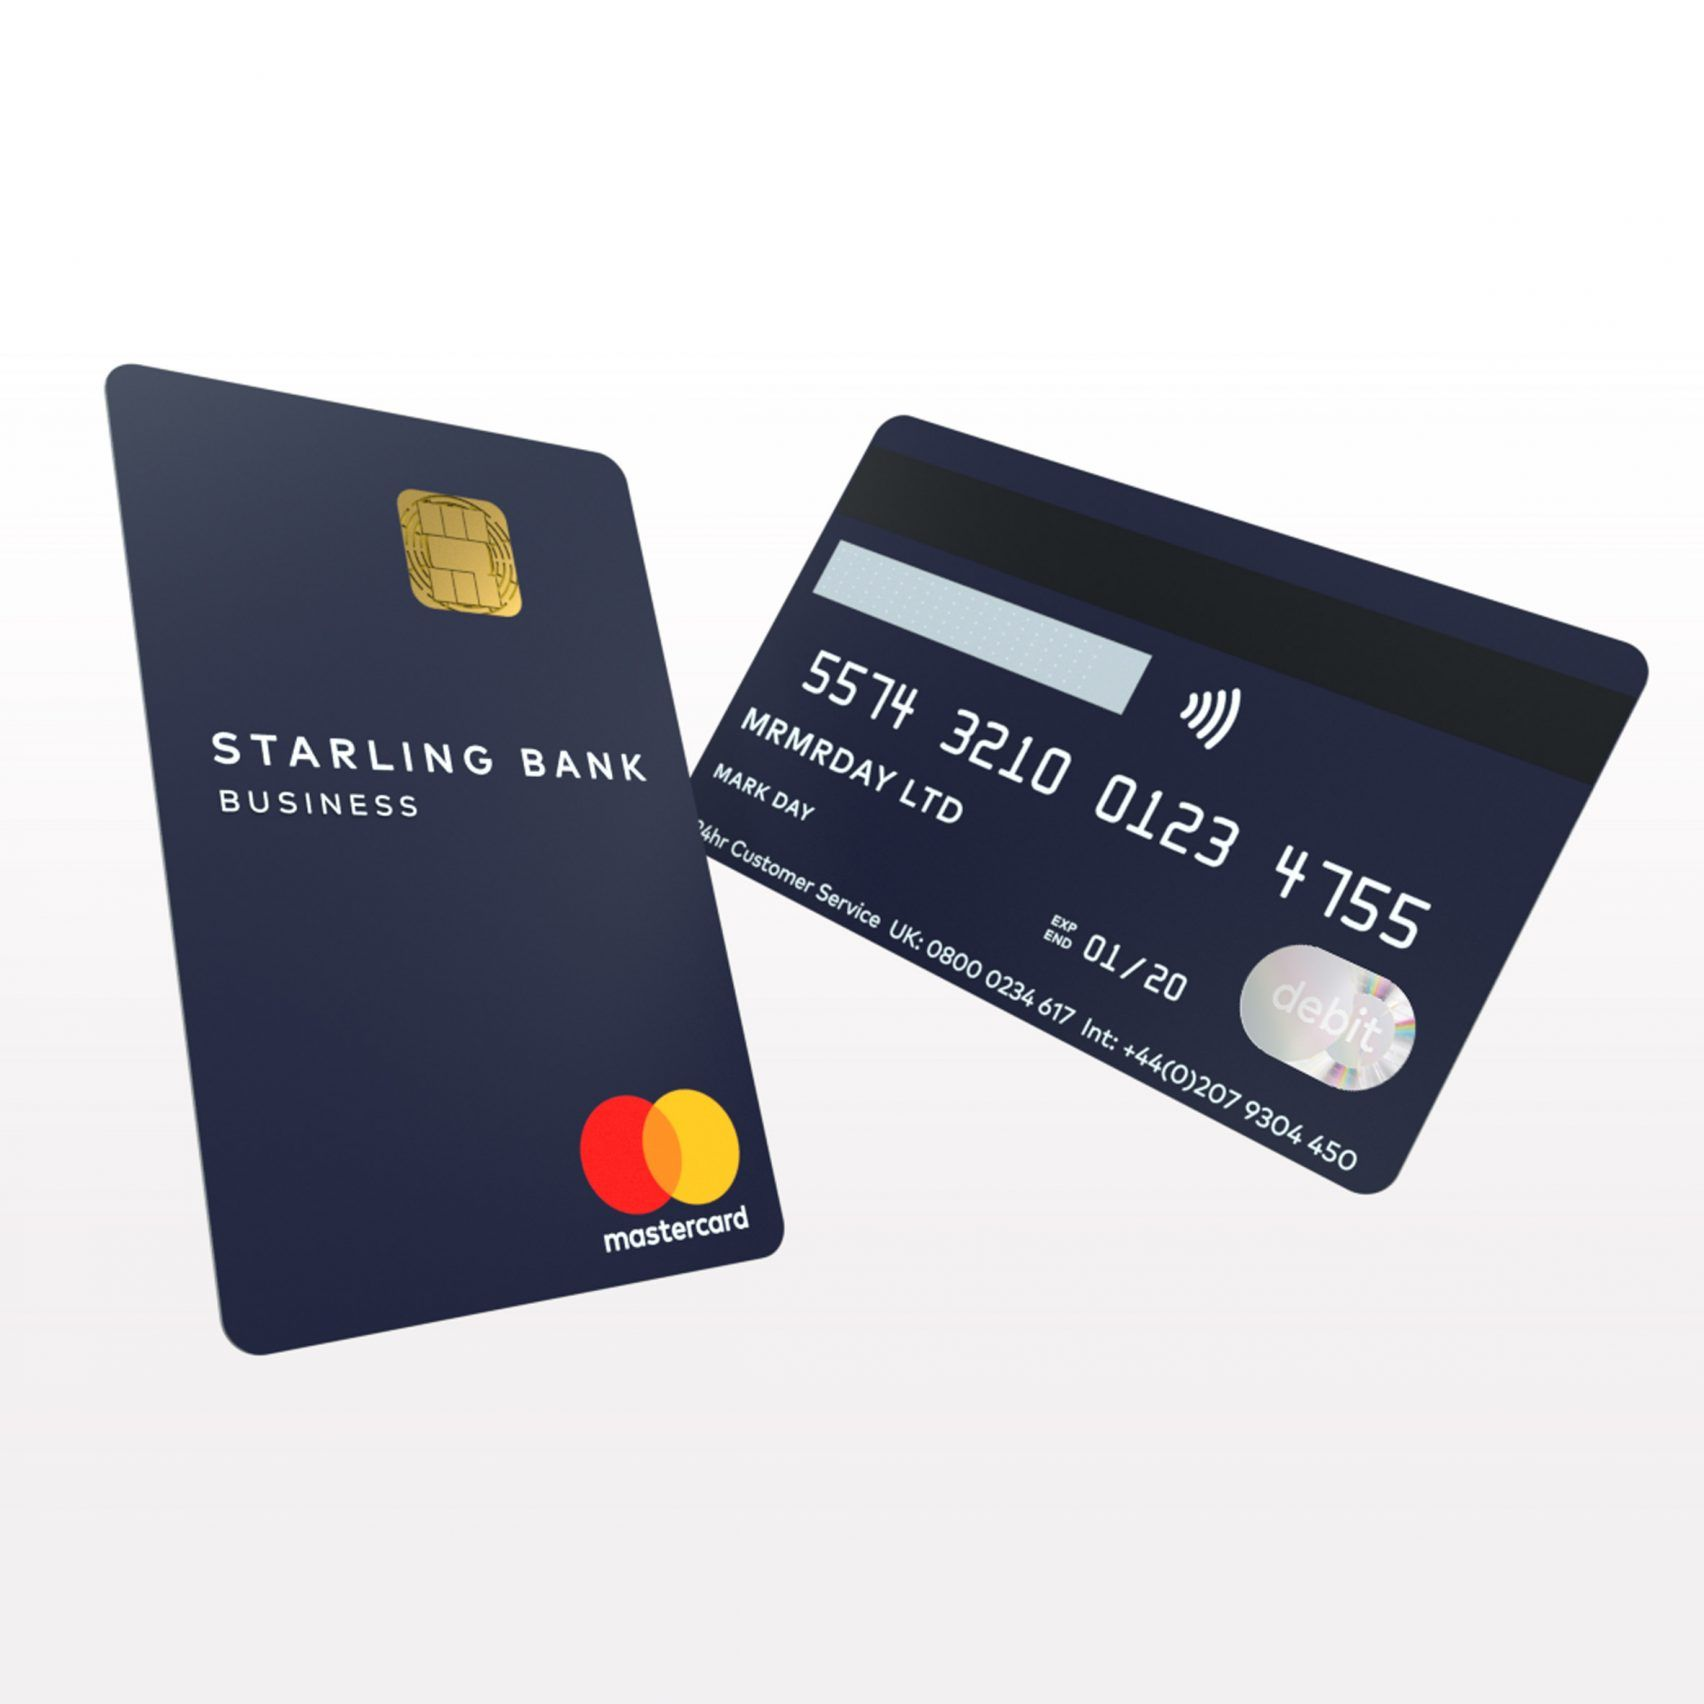 Starling Bank Launches Vertical Debit Card Debit Card Design Credit Card Design Card Design